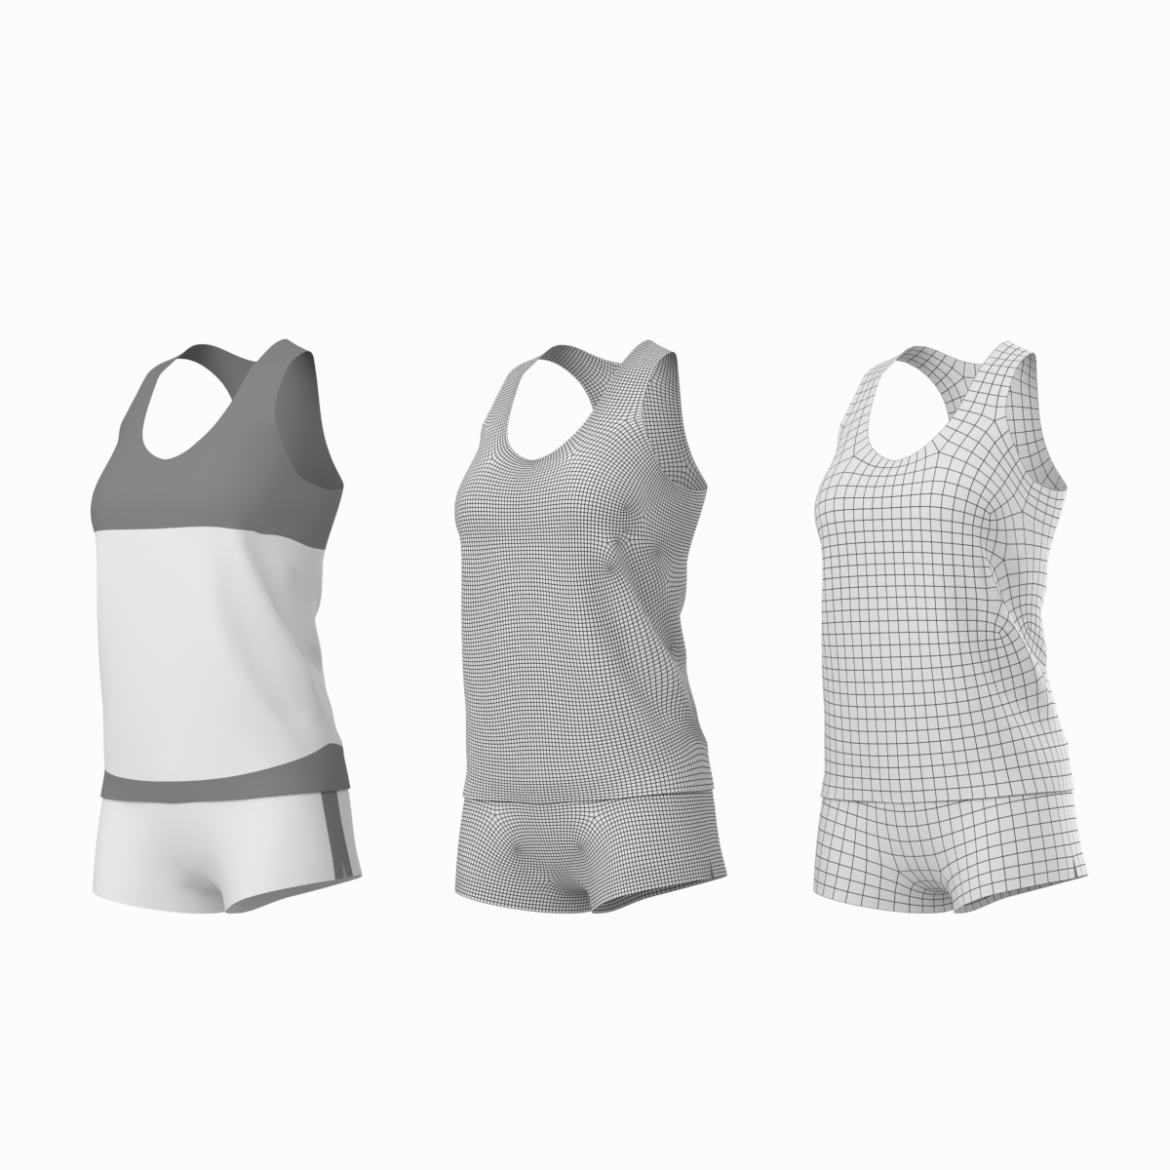 woman sportswear 03 base mesh design kit 3d model 3ds max fbx blend c4d dae ma mb  obj ztl 321865